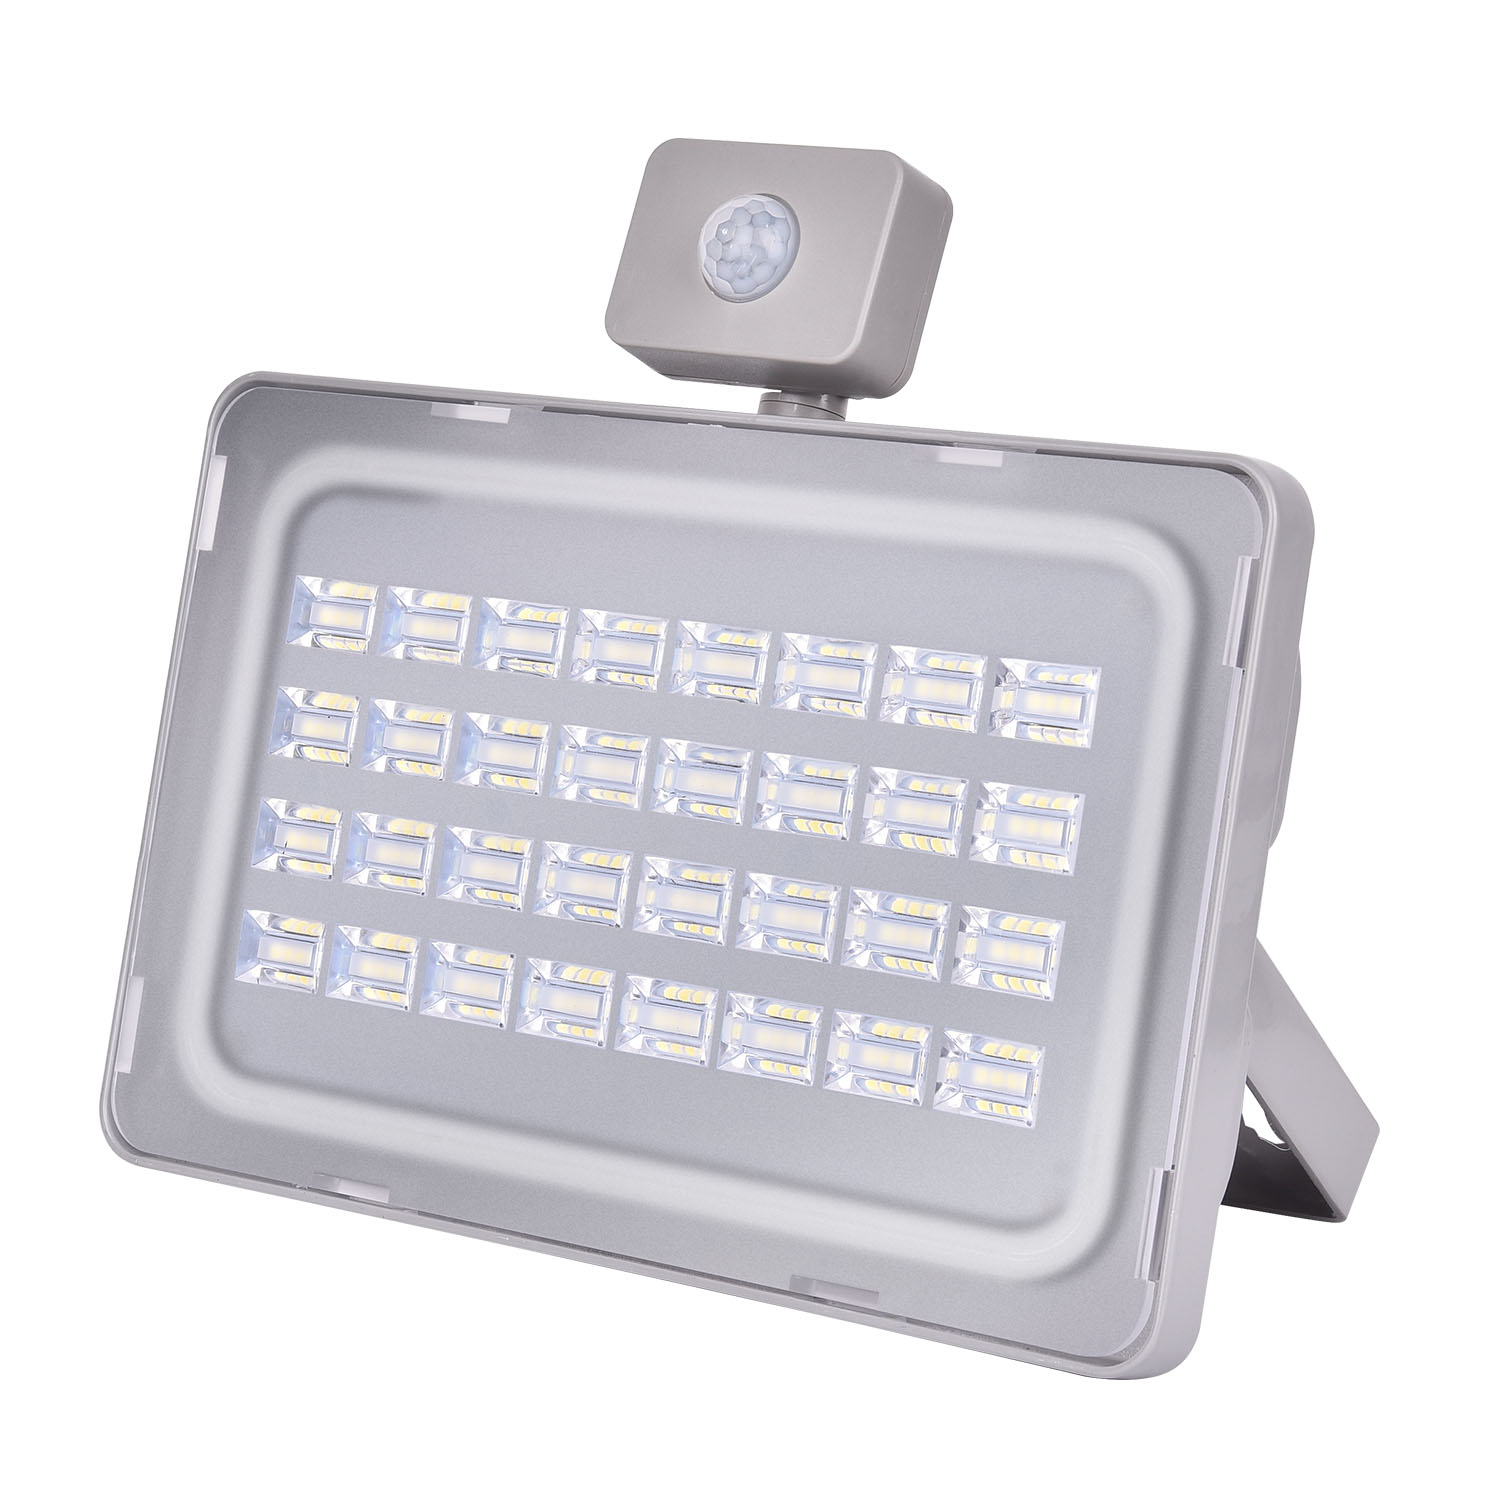 2017 New Led Flood light Motion Sensor 100W 110V 220V Led Floodlight Reflector Waterproof PIR Projector Lamp Outdoor Lighting